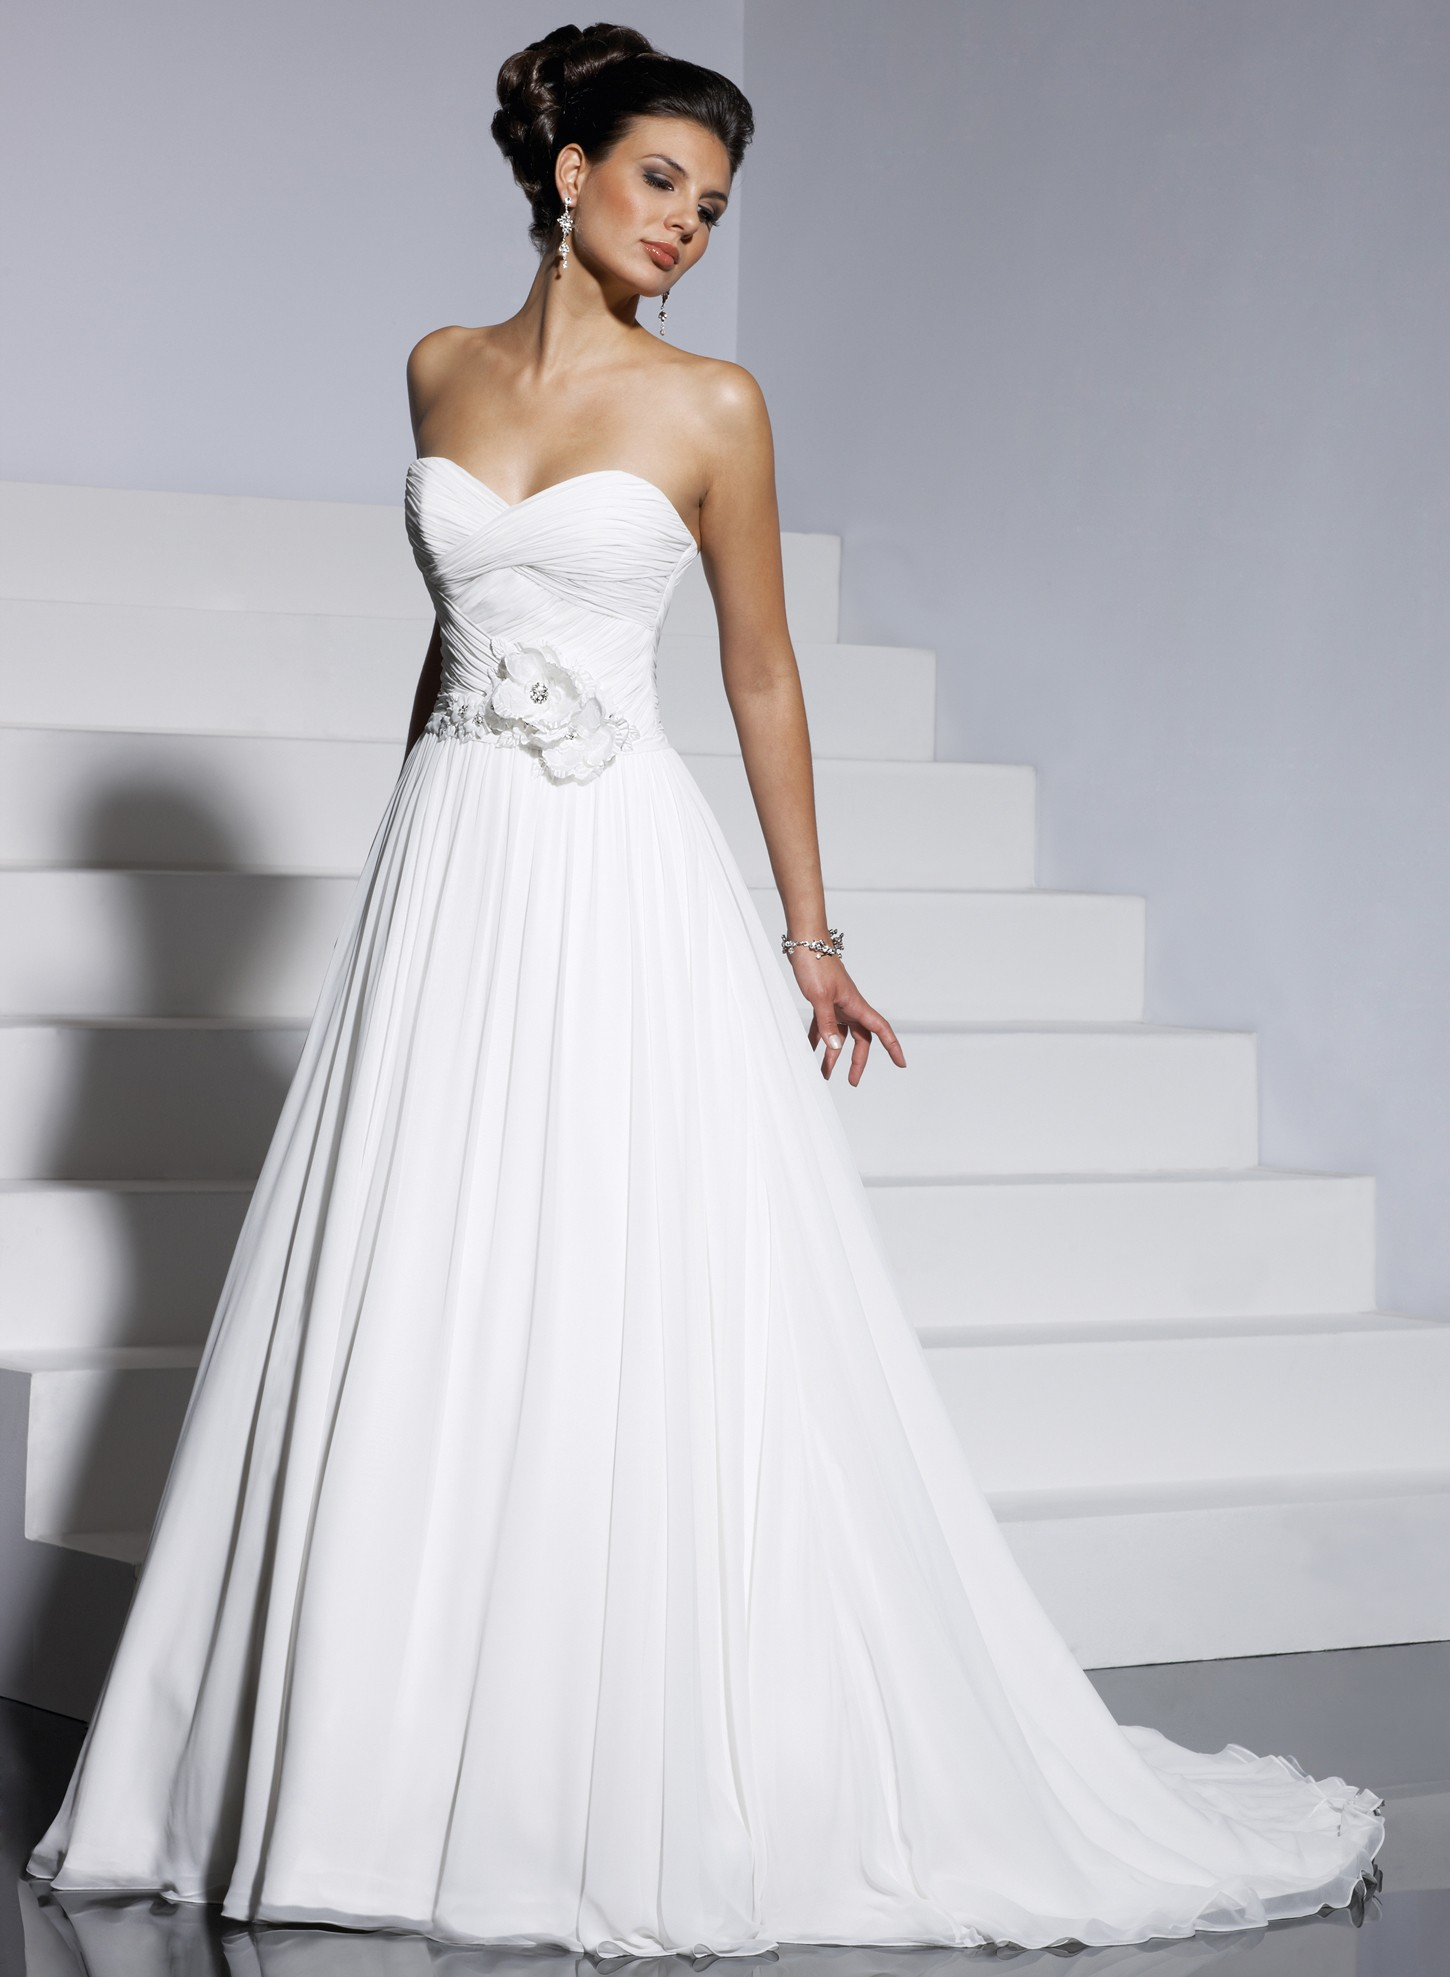 Wedding Gowns A Line Strapless : Guide to what suits your shape the dress silhouettes defined